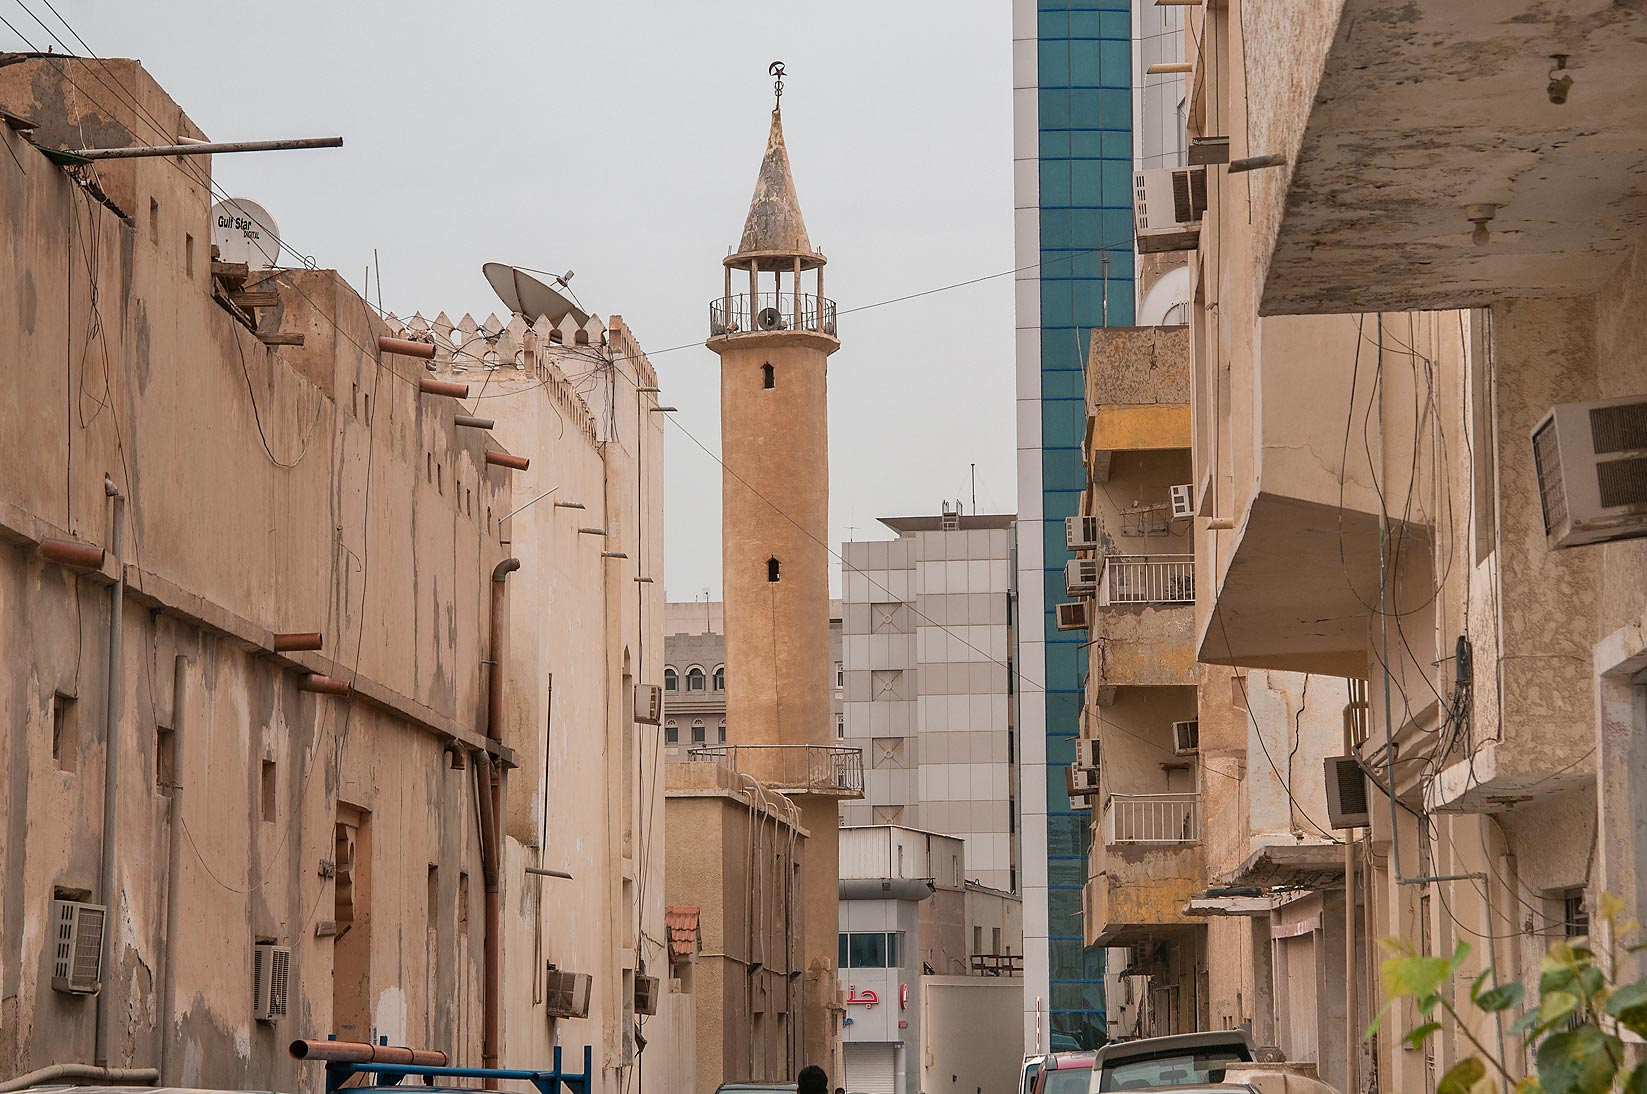 View to the east from Al Nadwa St., Musheirib area. Doha, Qatar